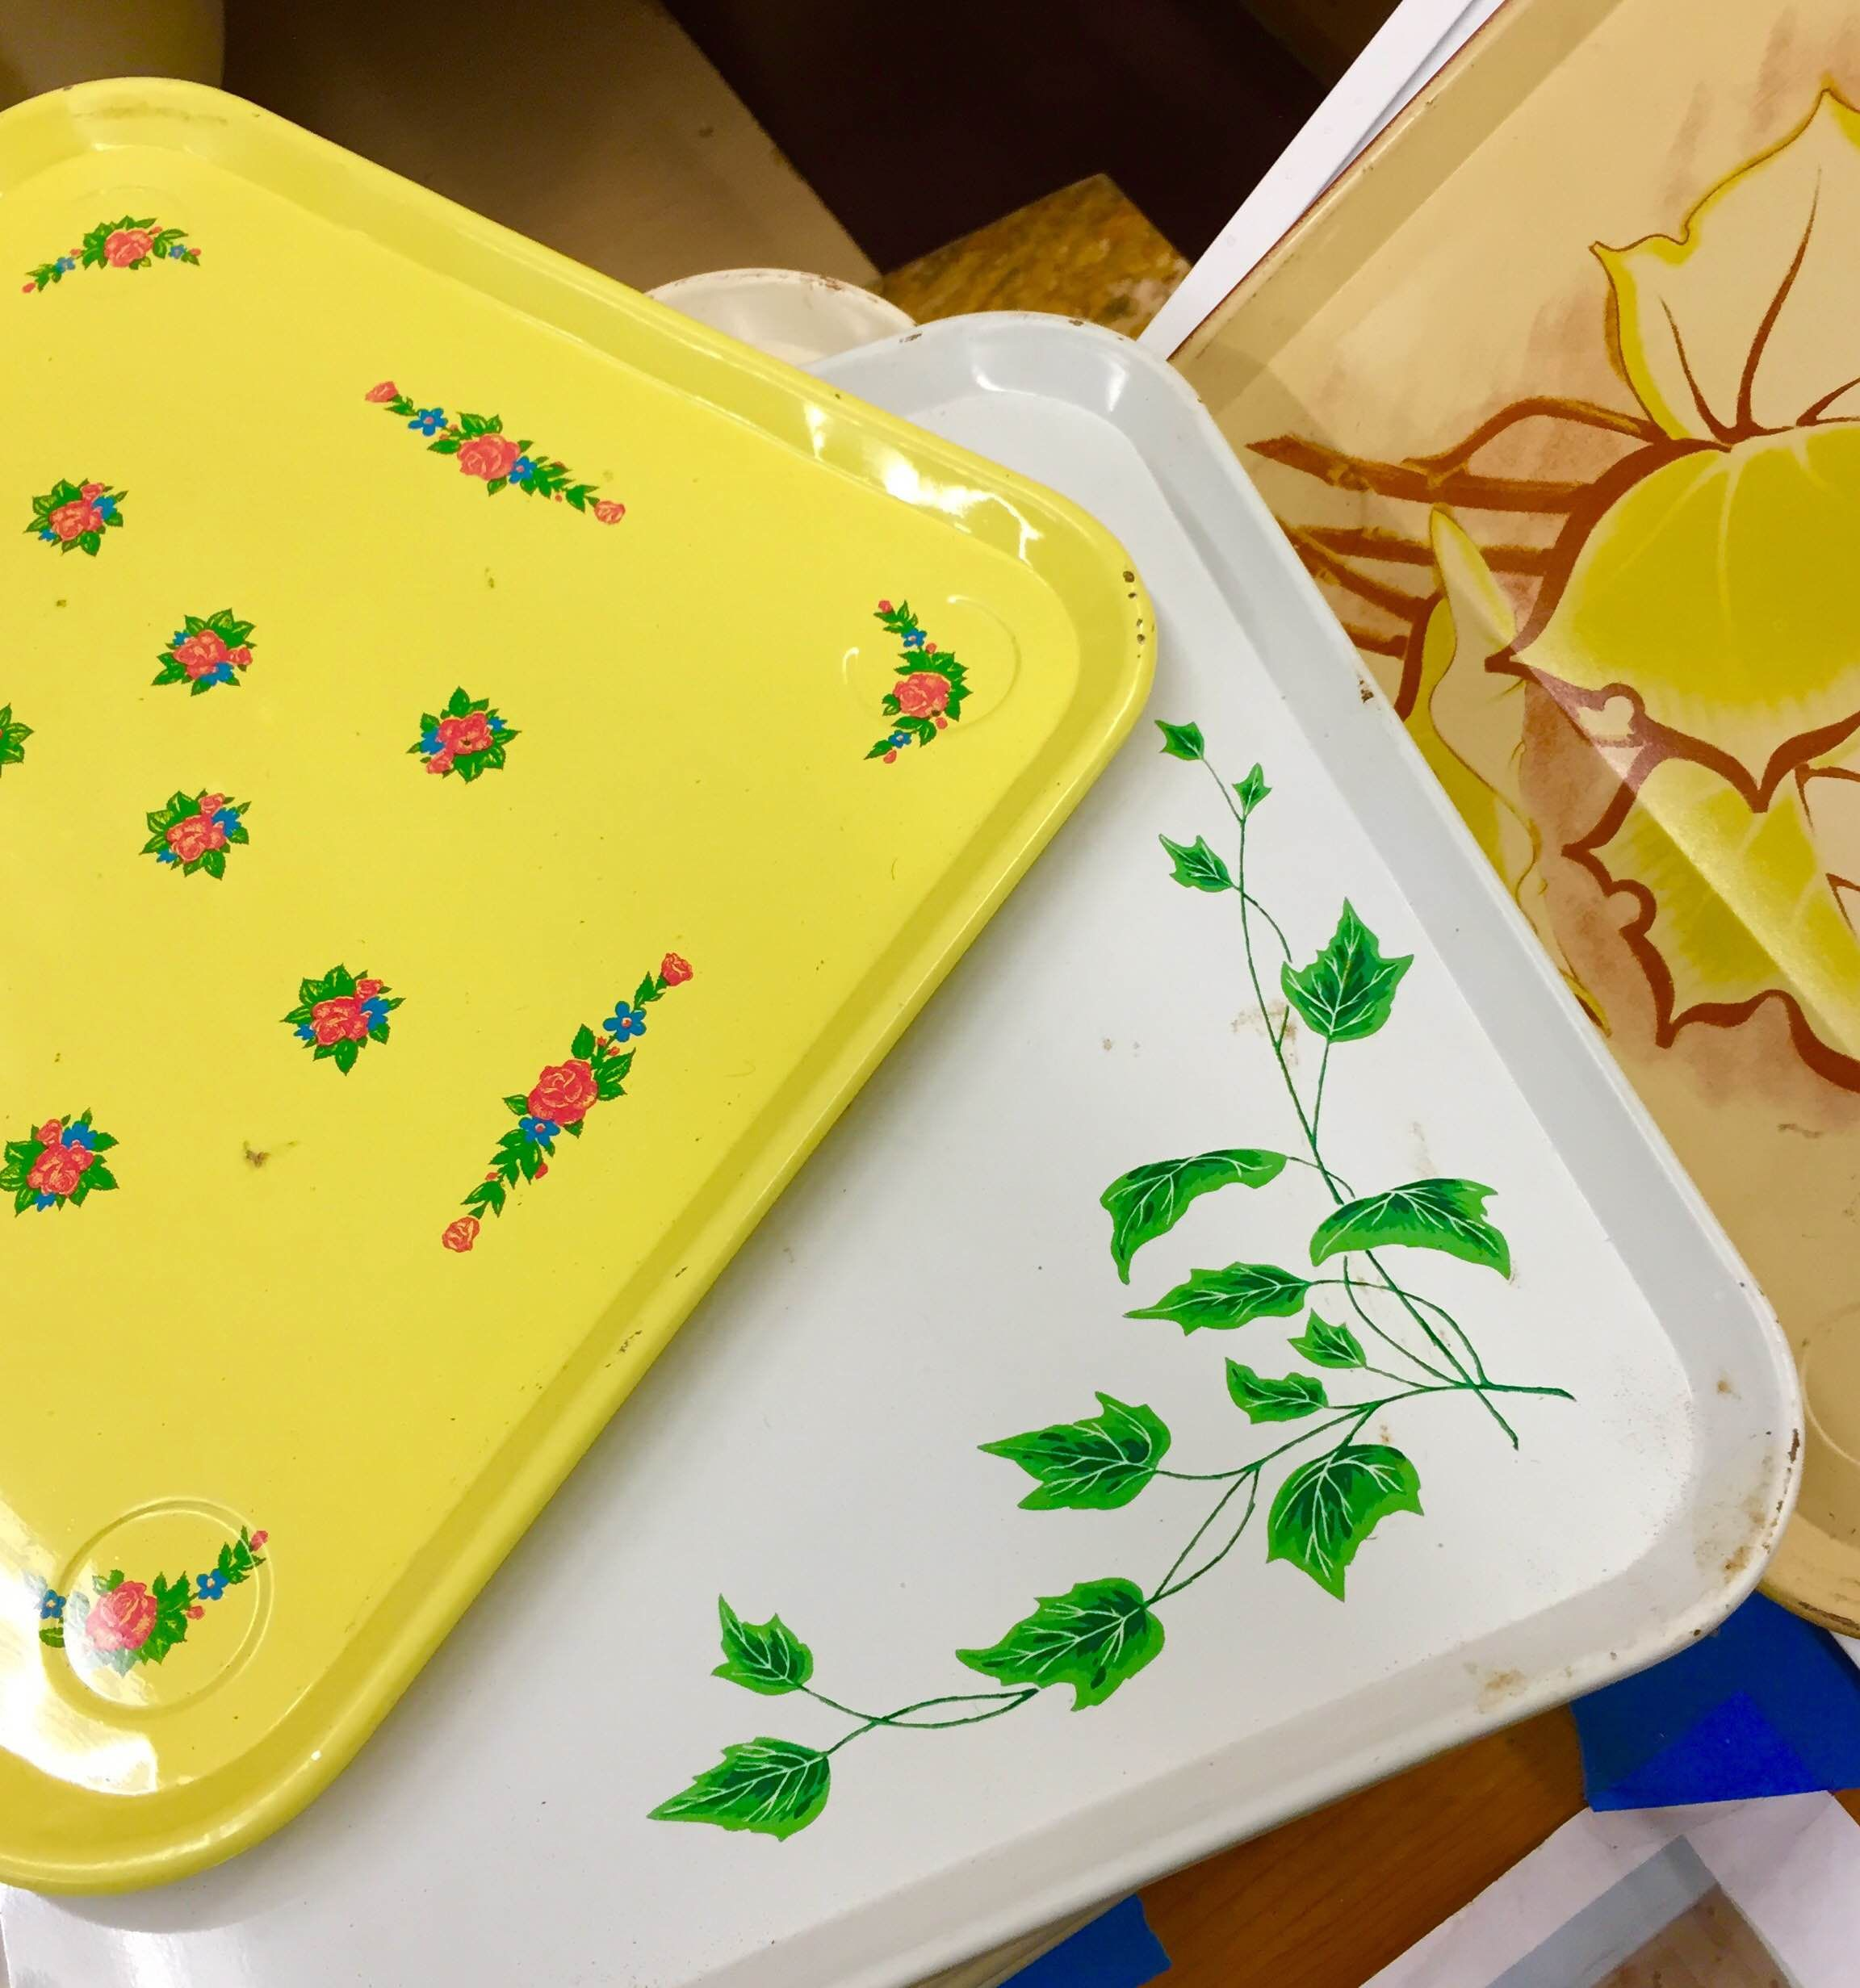 Calling all teachers, cafe owners, and crafty elite. We have a tall stack of these awesomely kitsch enameled tray.